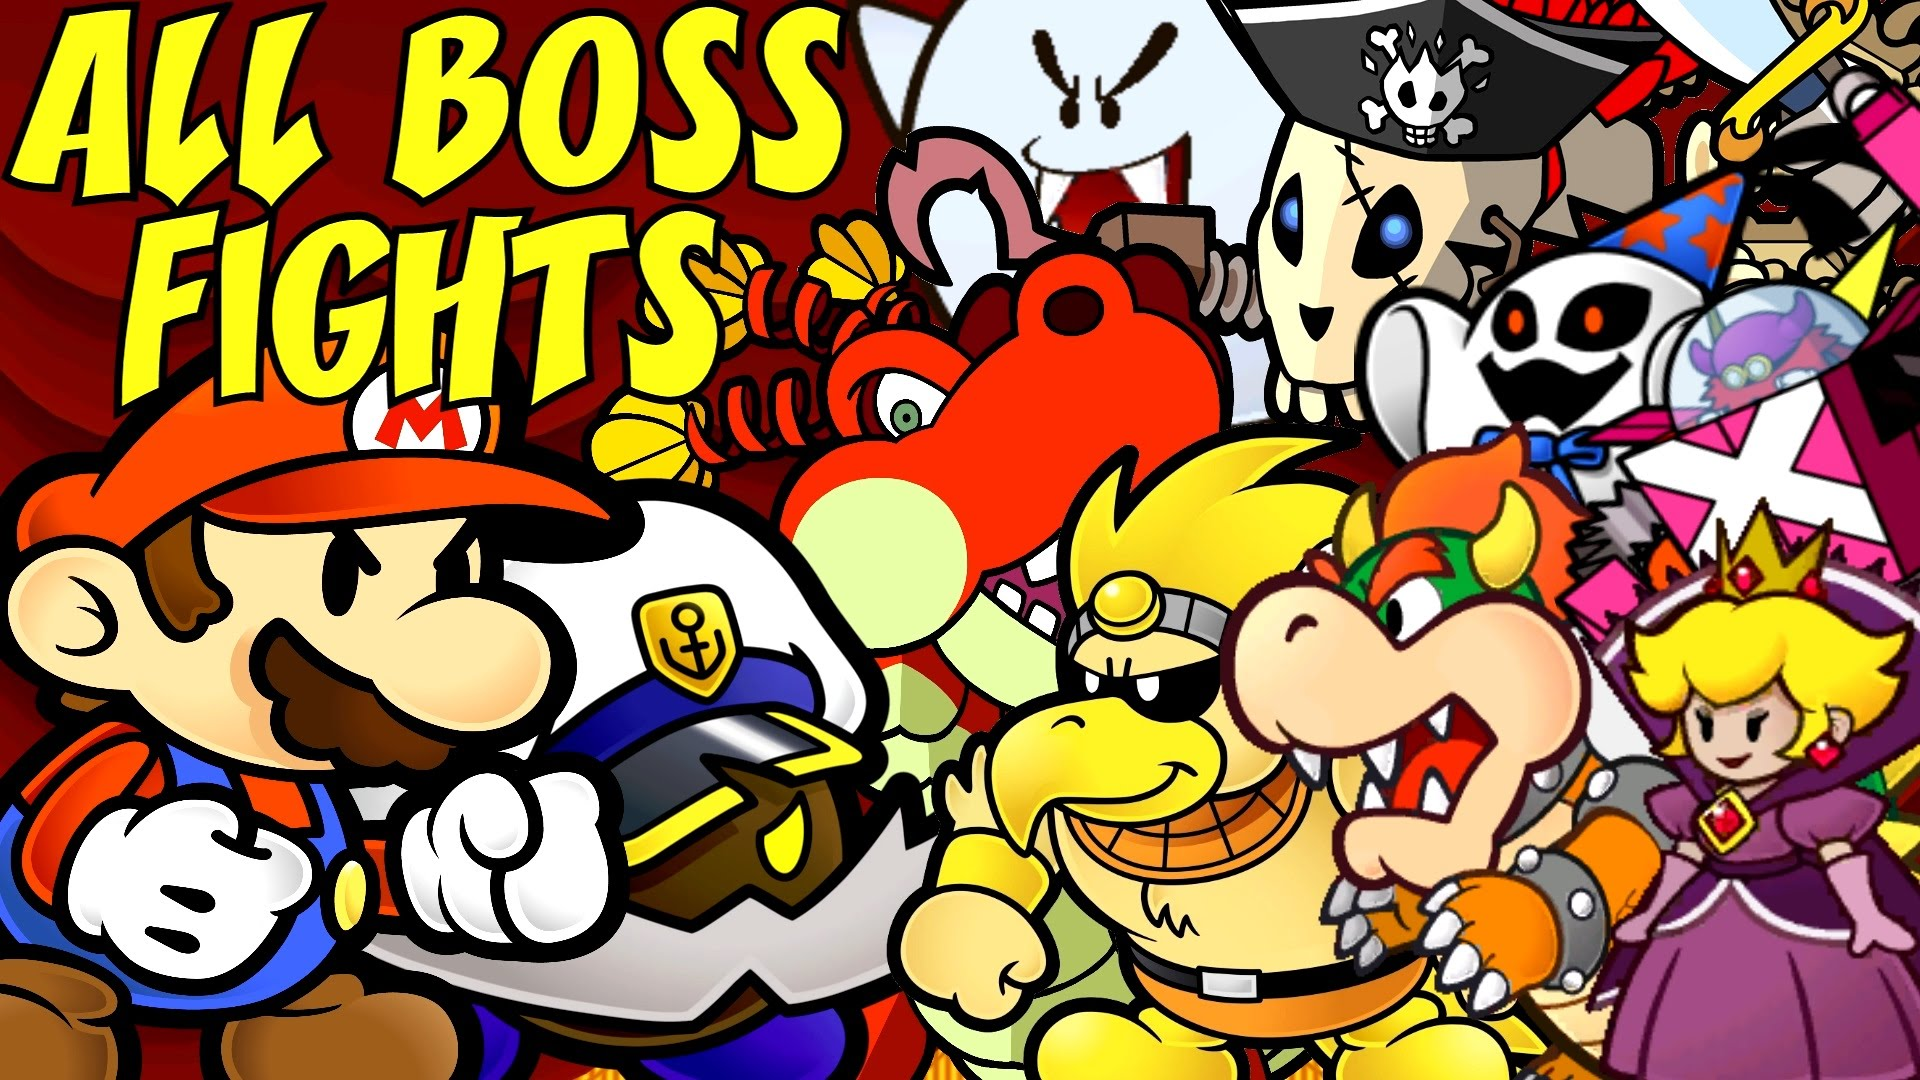 Most Viewed Paper Mario The Thousand Year Door Wallpapers 4k